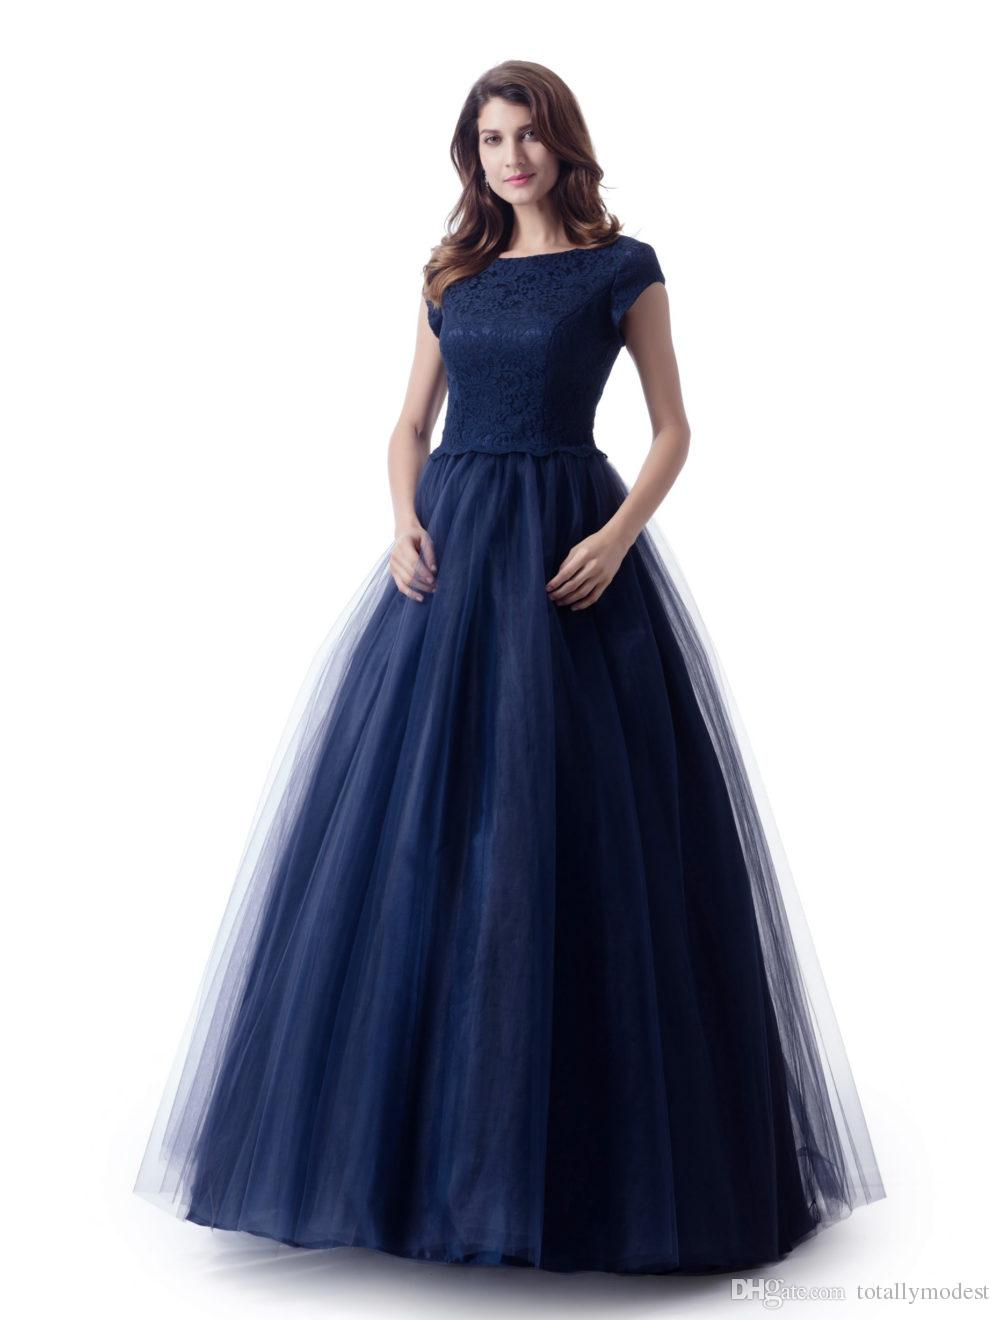 Long Modest Bridesmaid Dresses With Short Sleeves For Wedding Lace Top Tulle Skirt Puffy Women LDS Wedding Party Dress